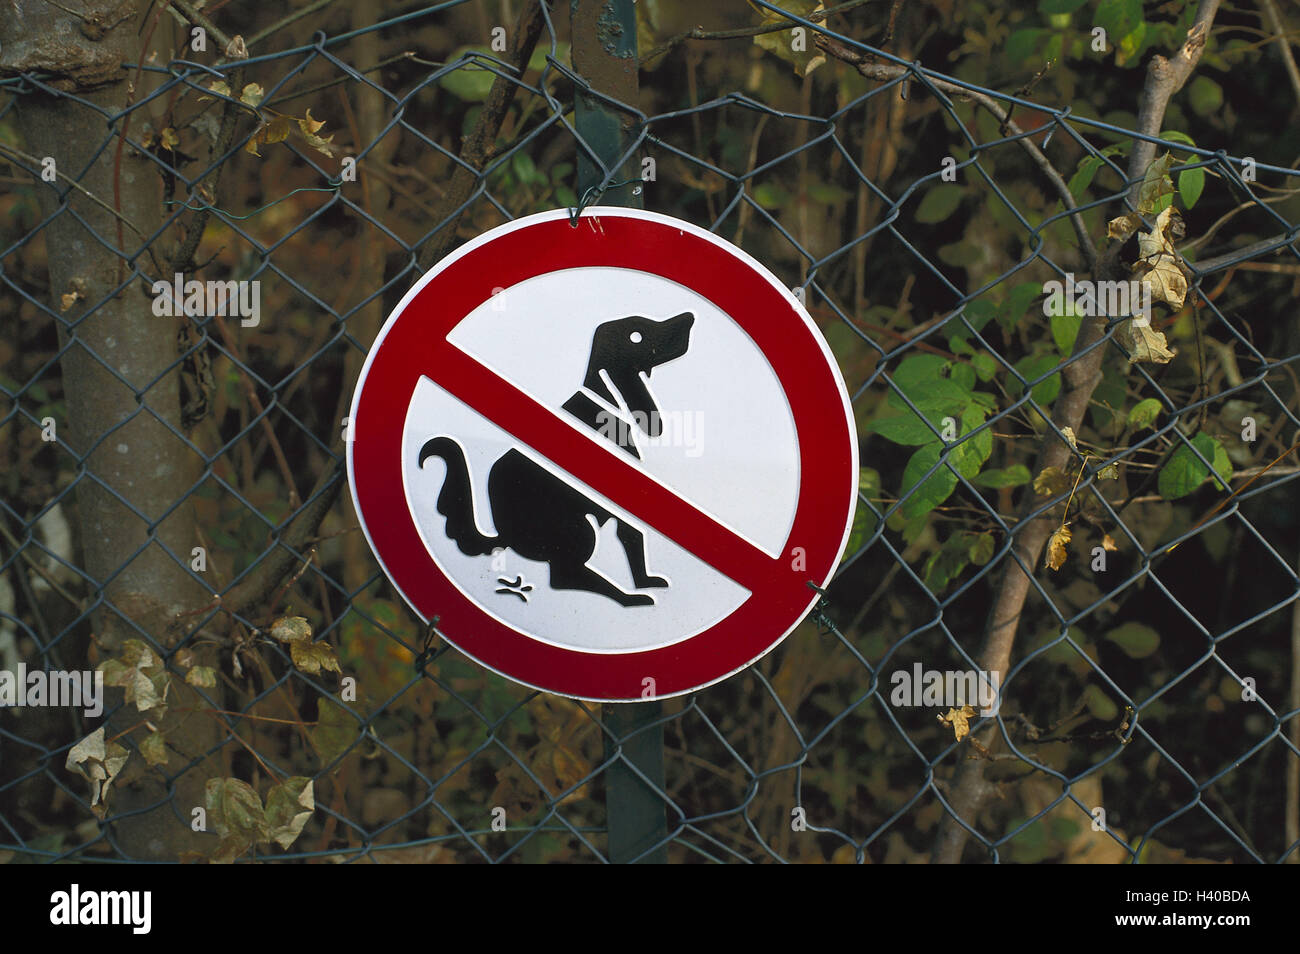 Wire fence, no parking sign, 'dog excrement', sign, sign, excrement stop, dogs, motion, dog small heap, - Stock Image